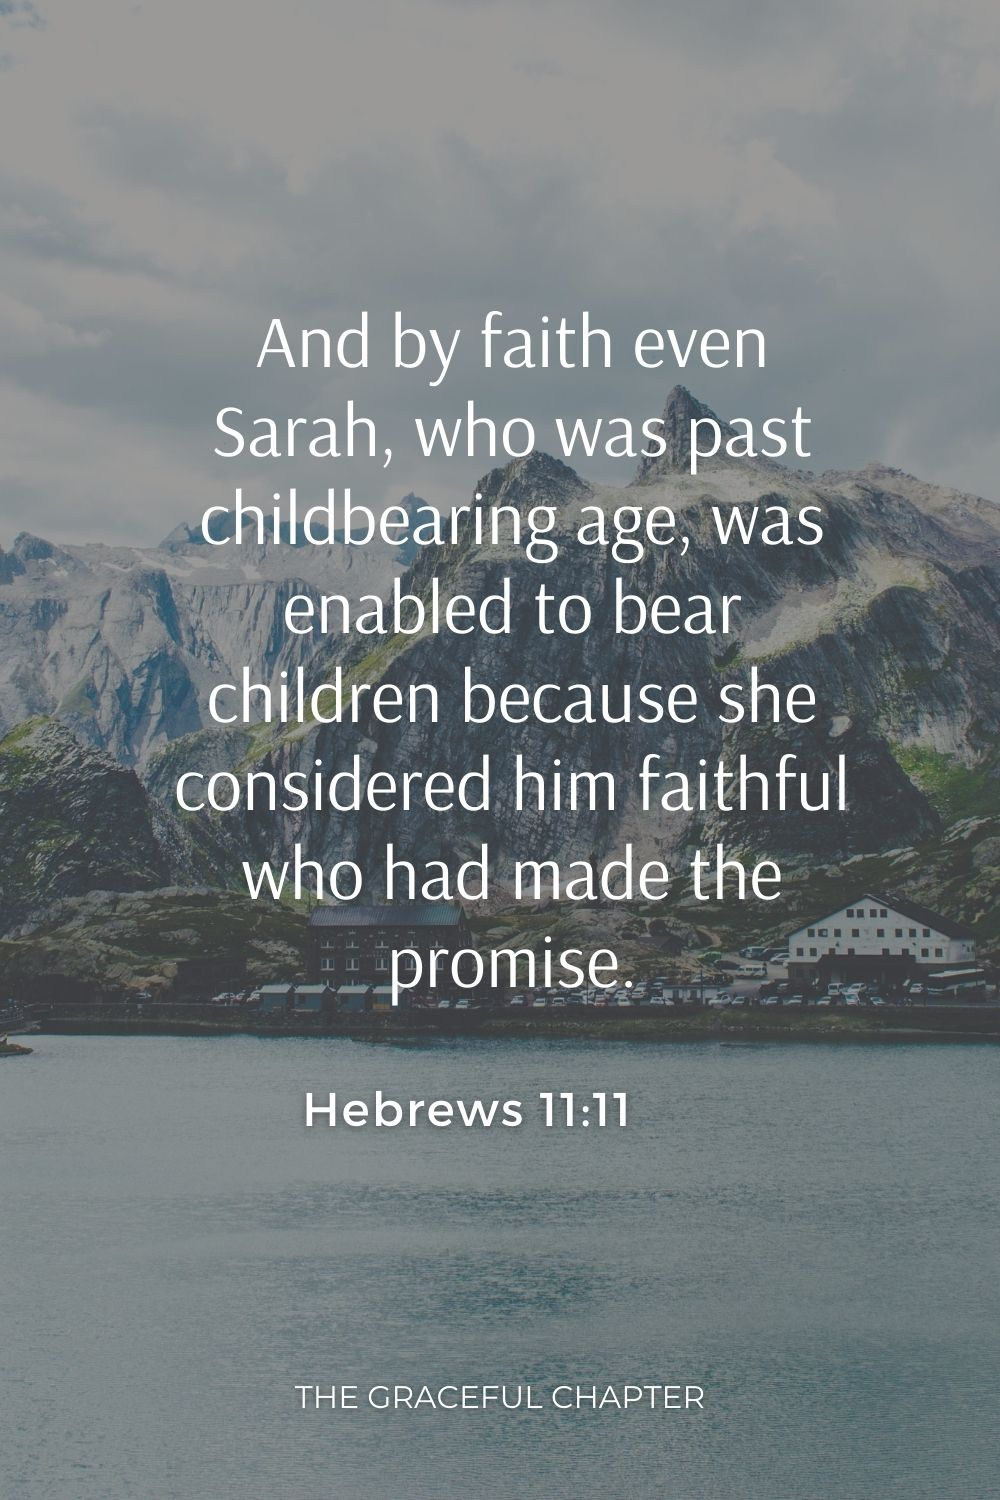 And by faith even Sarah, who was past childbearing age, was enabled to bear children because she considered him faithful who had made the promise. Hebrews 11:11